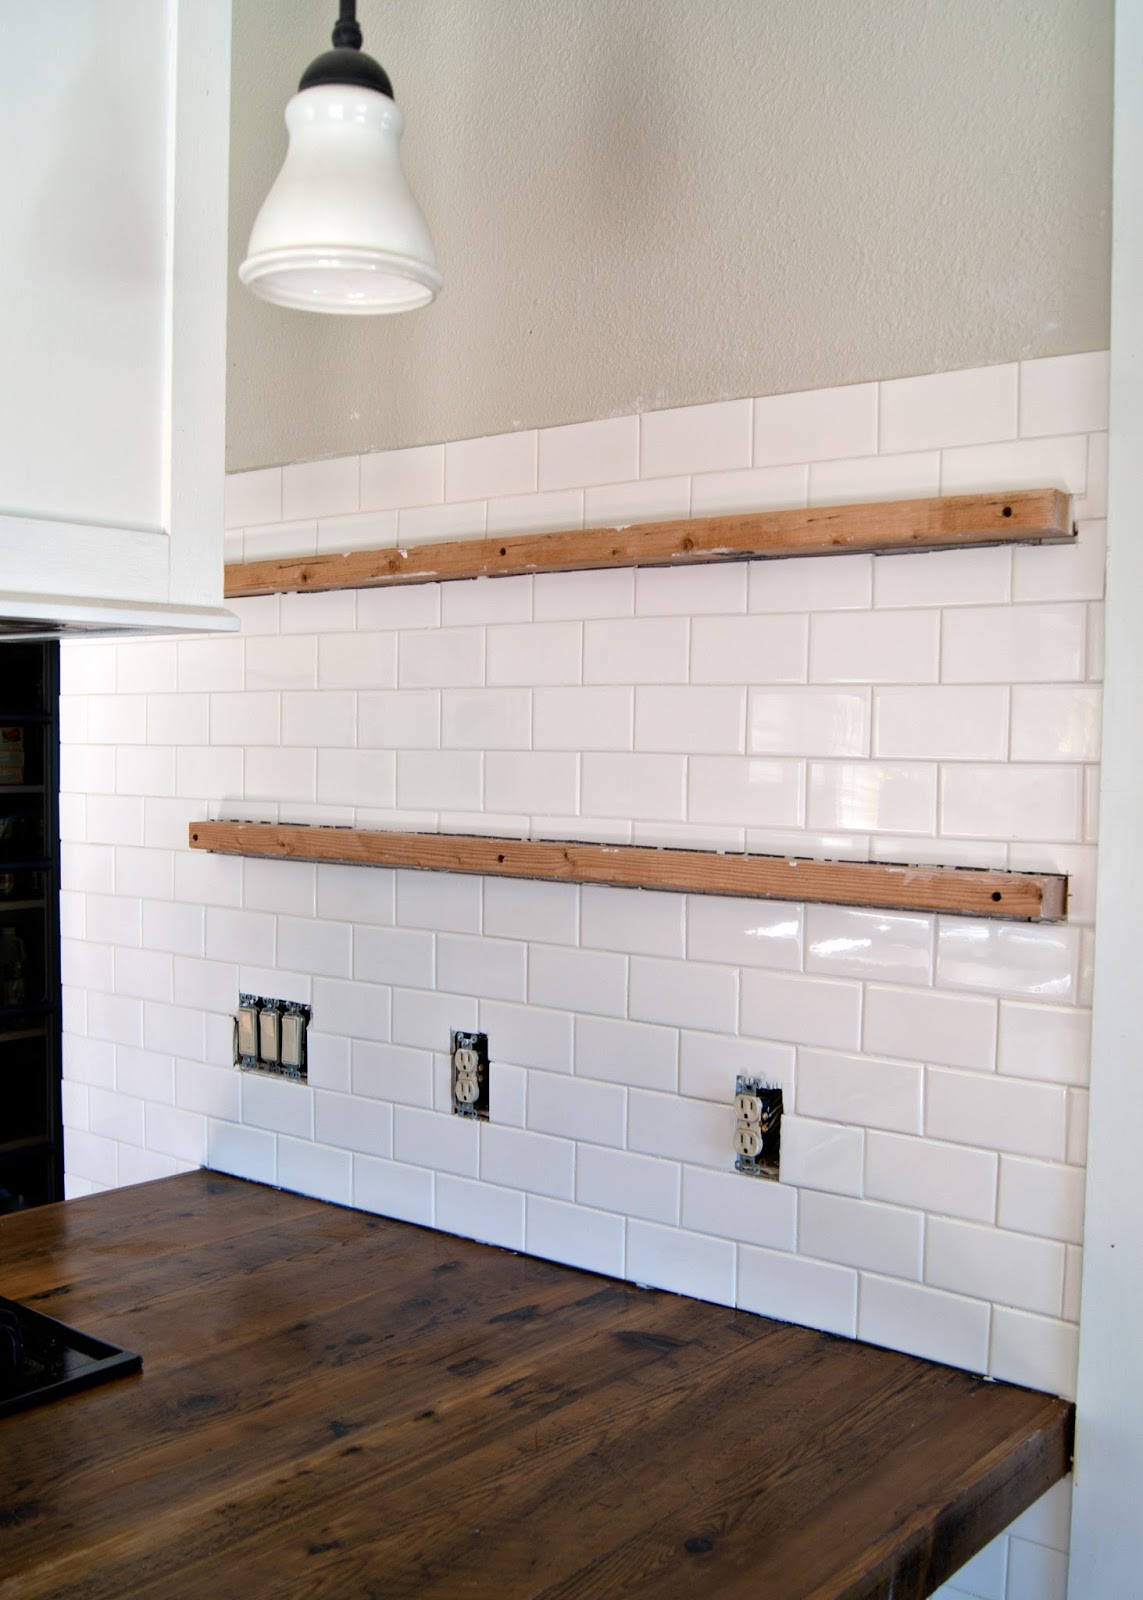 Subway tile installation tips on grouting with fusion pro im dailygadgetfo Image collections